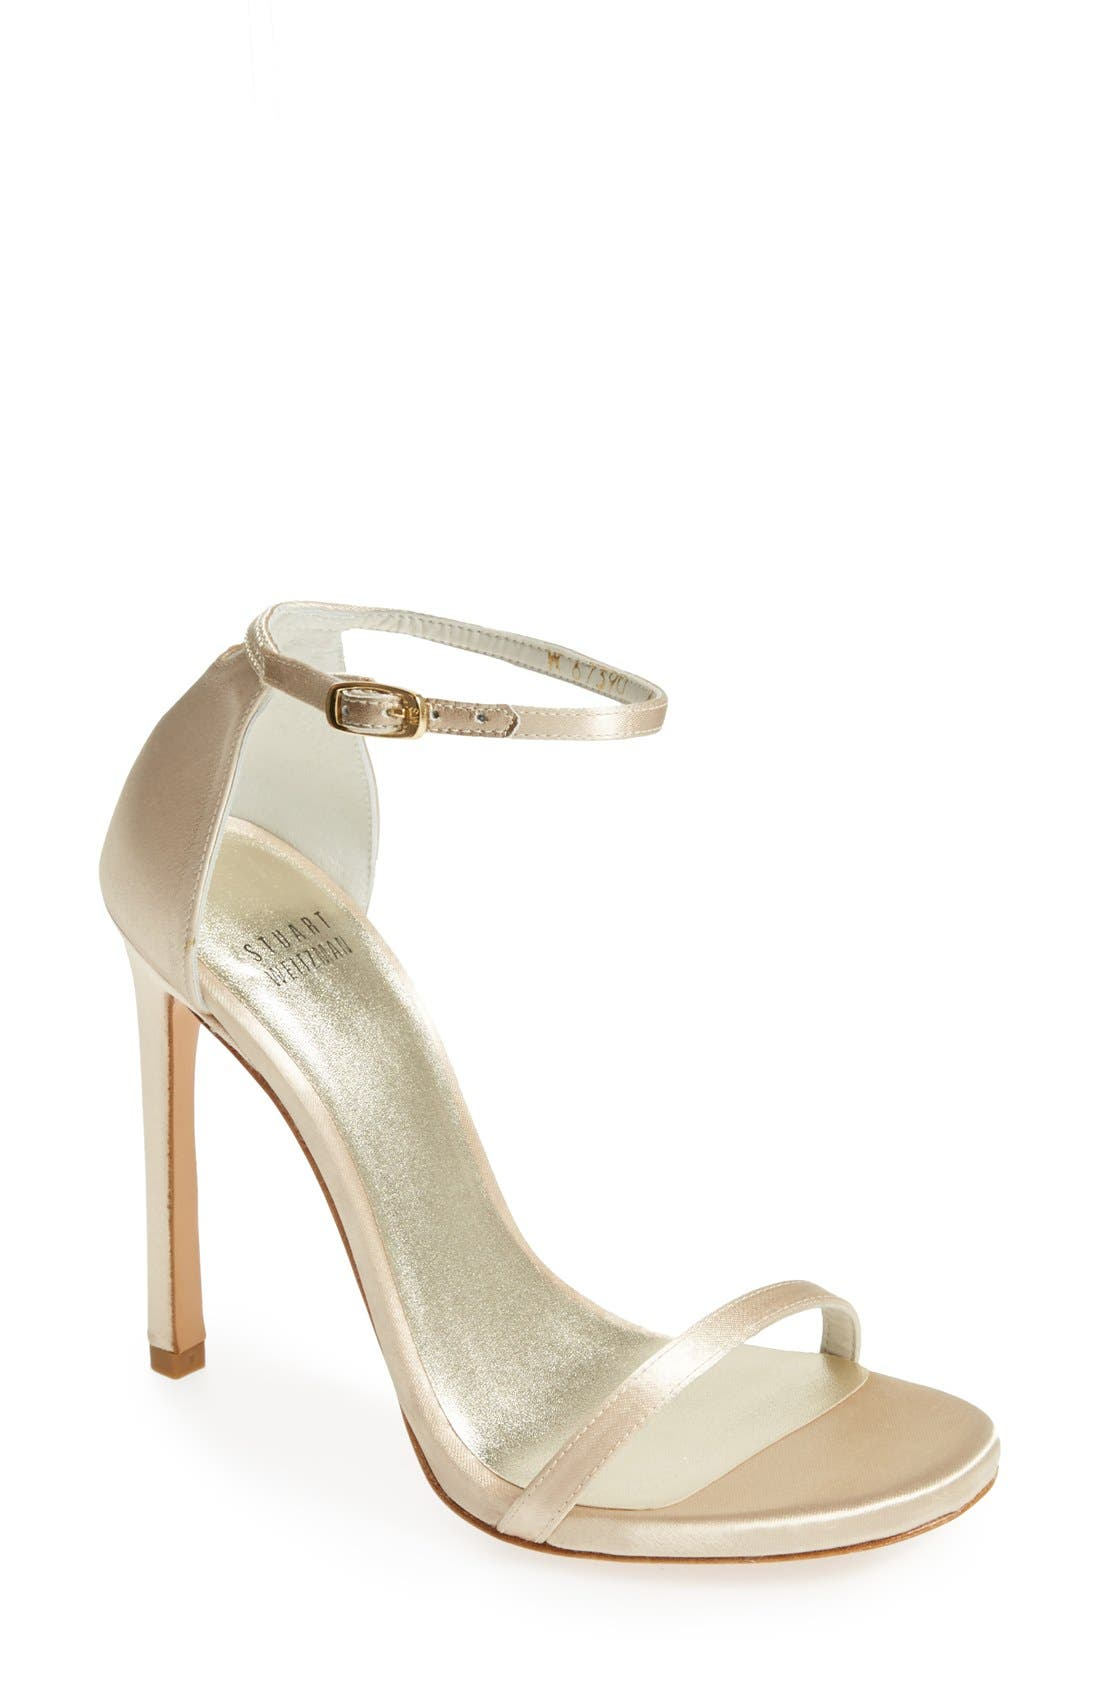 Alternate Image 1 Selected - Stuart Weitzman 'Nudist' Sandal (Women)